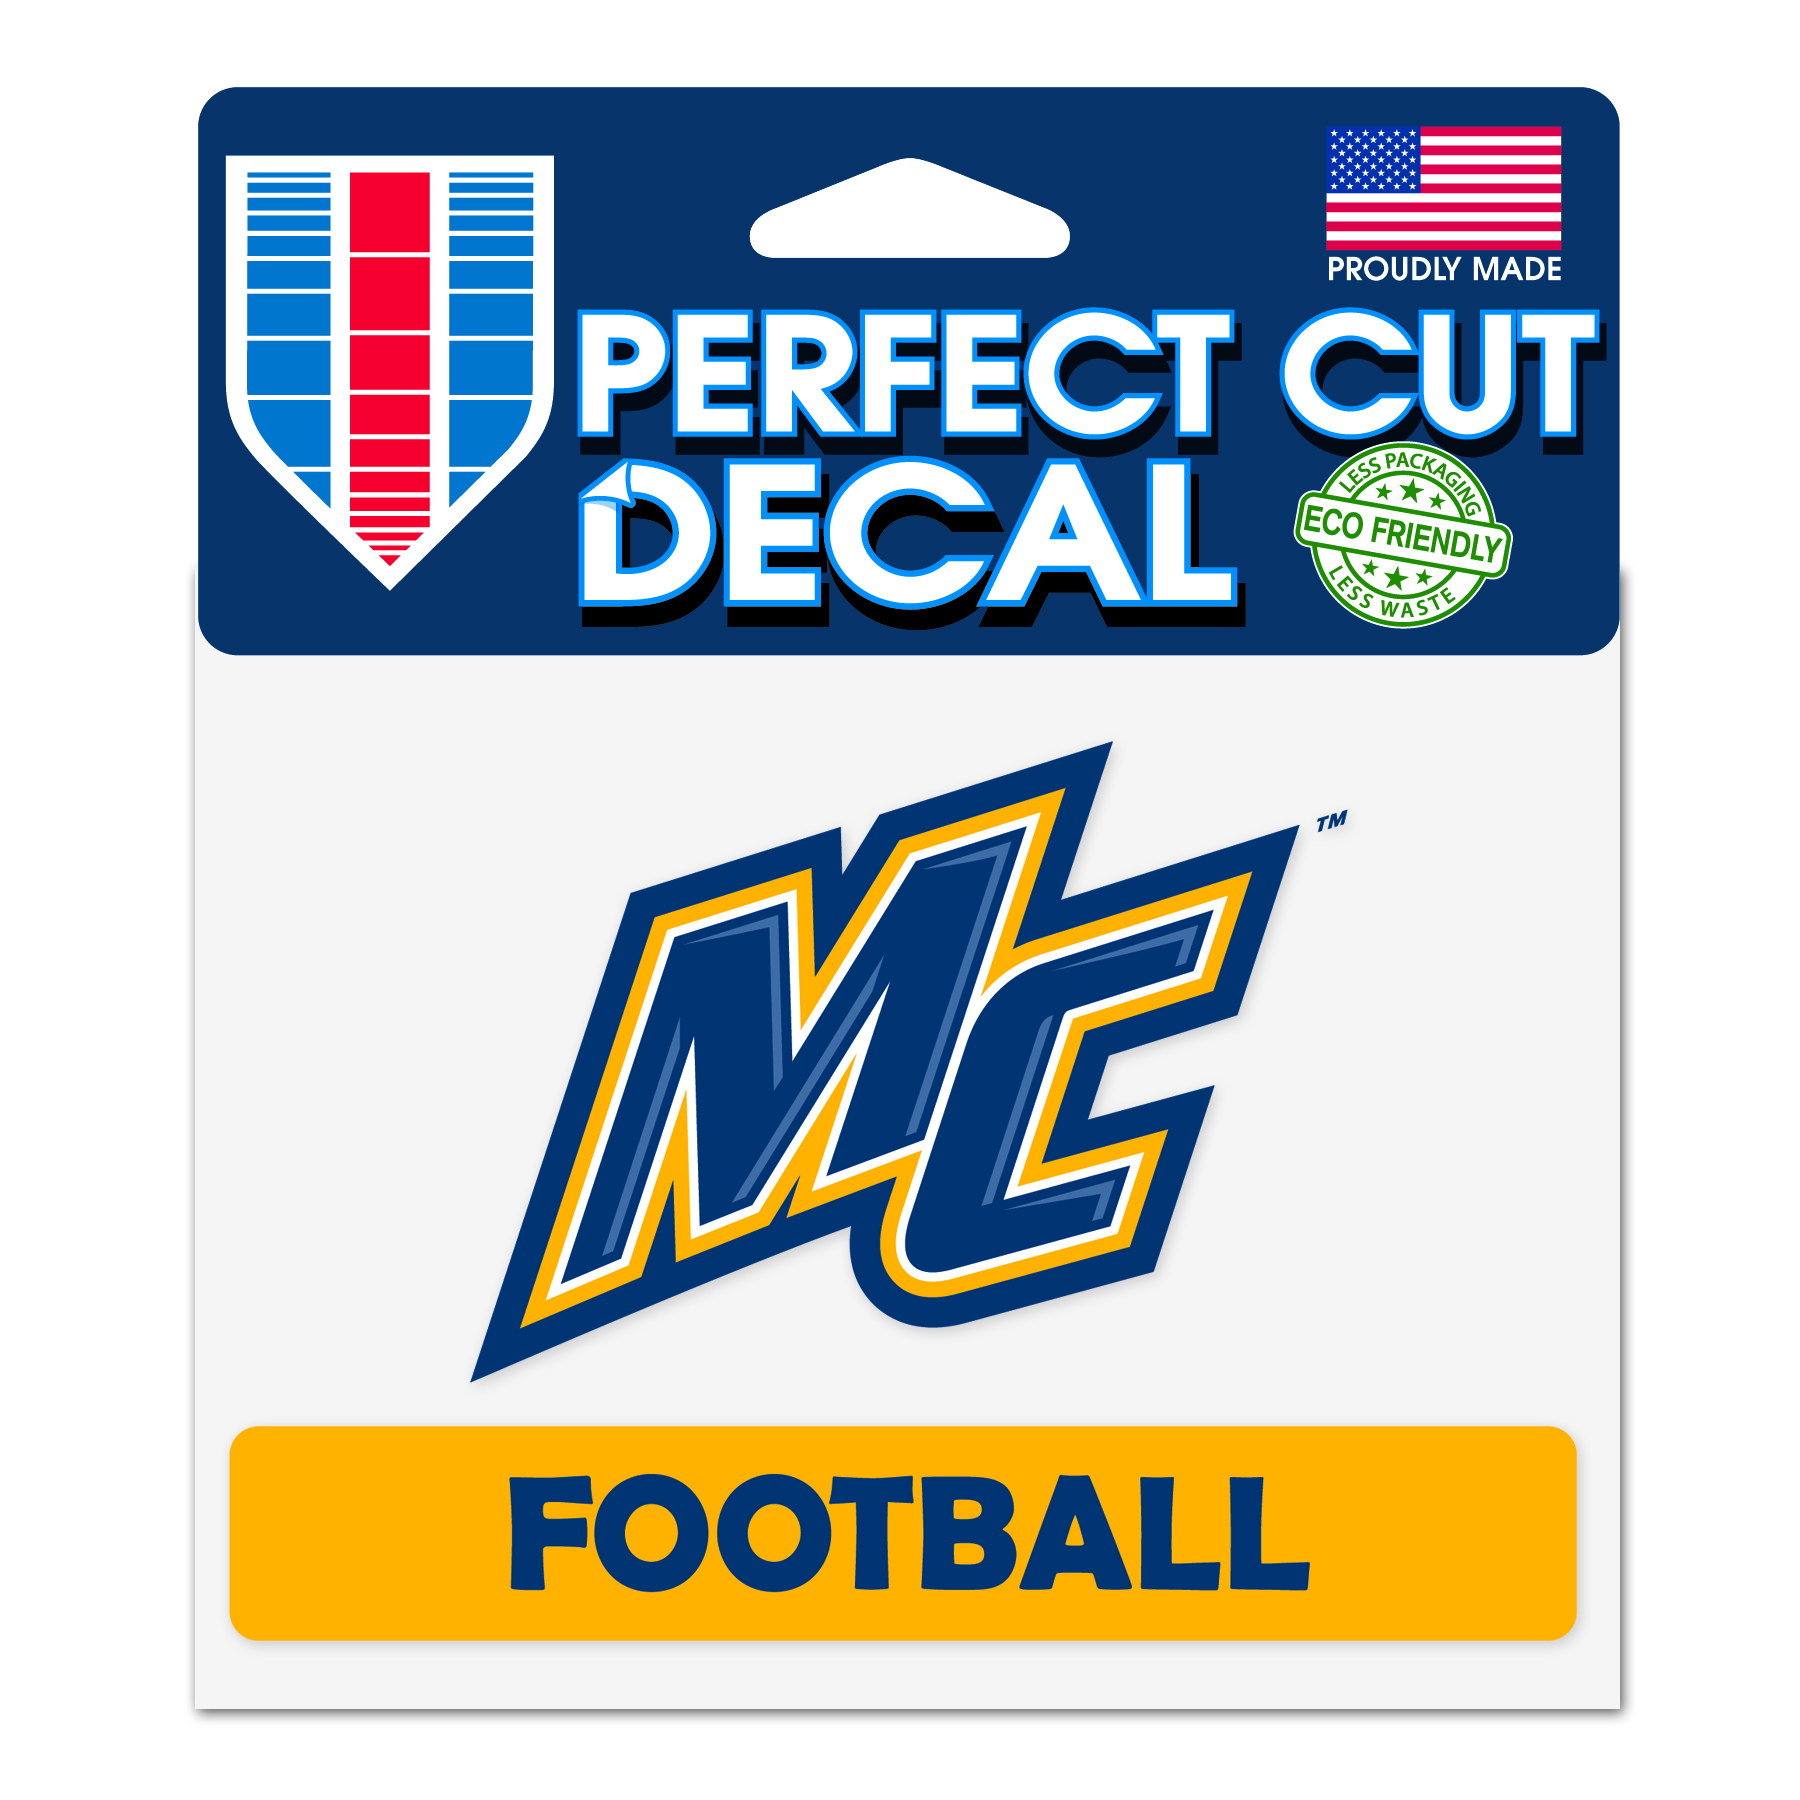 Decal - Football